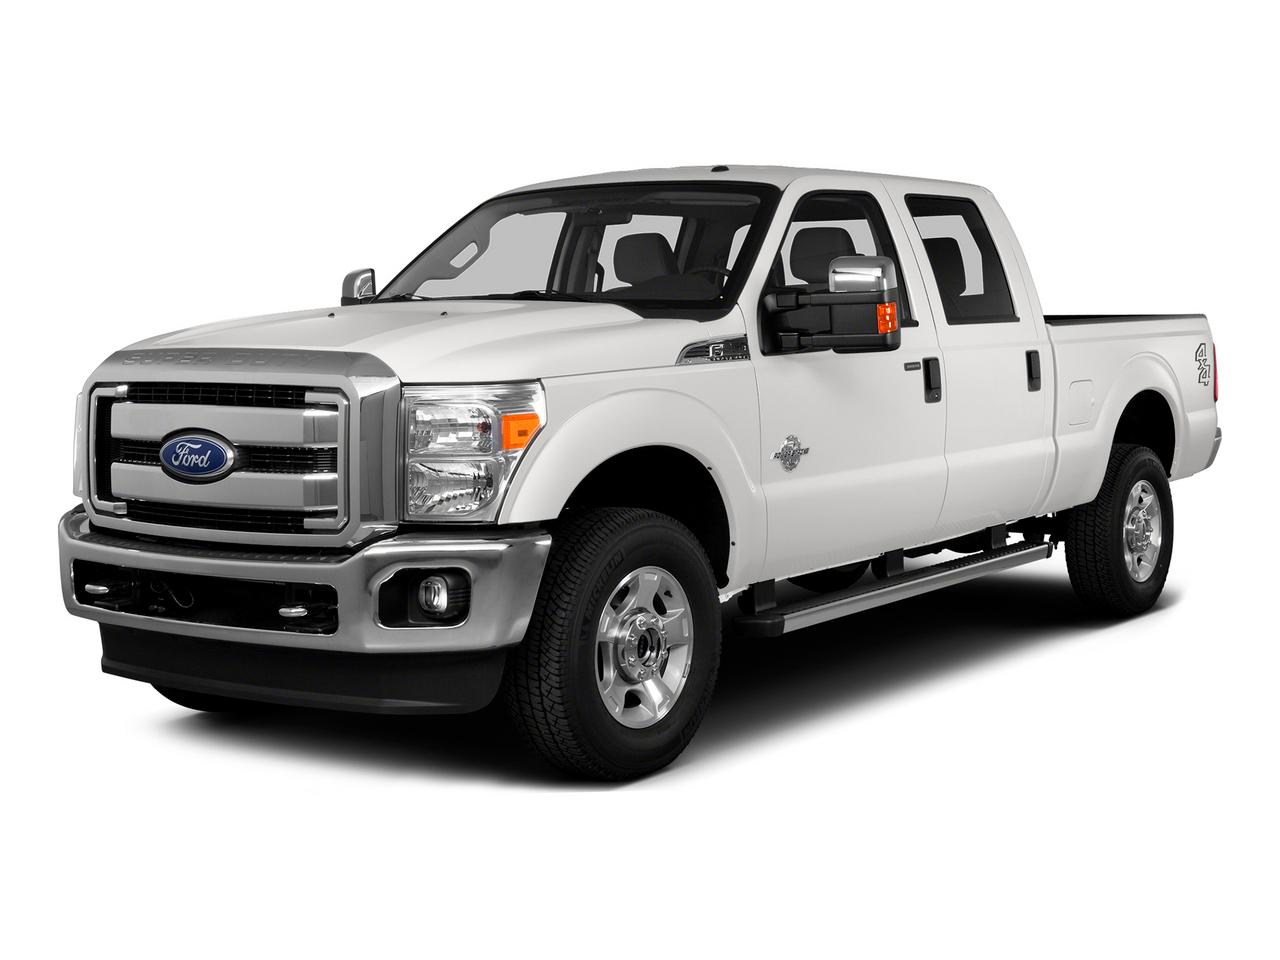 2015 Ford Super Duty F-350 SRW Vehicle Photo in Joliet, IL 60435